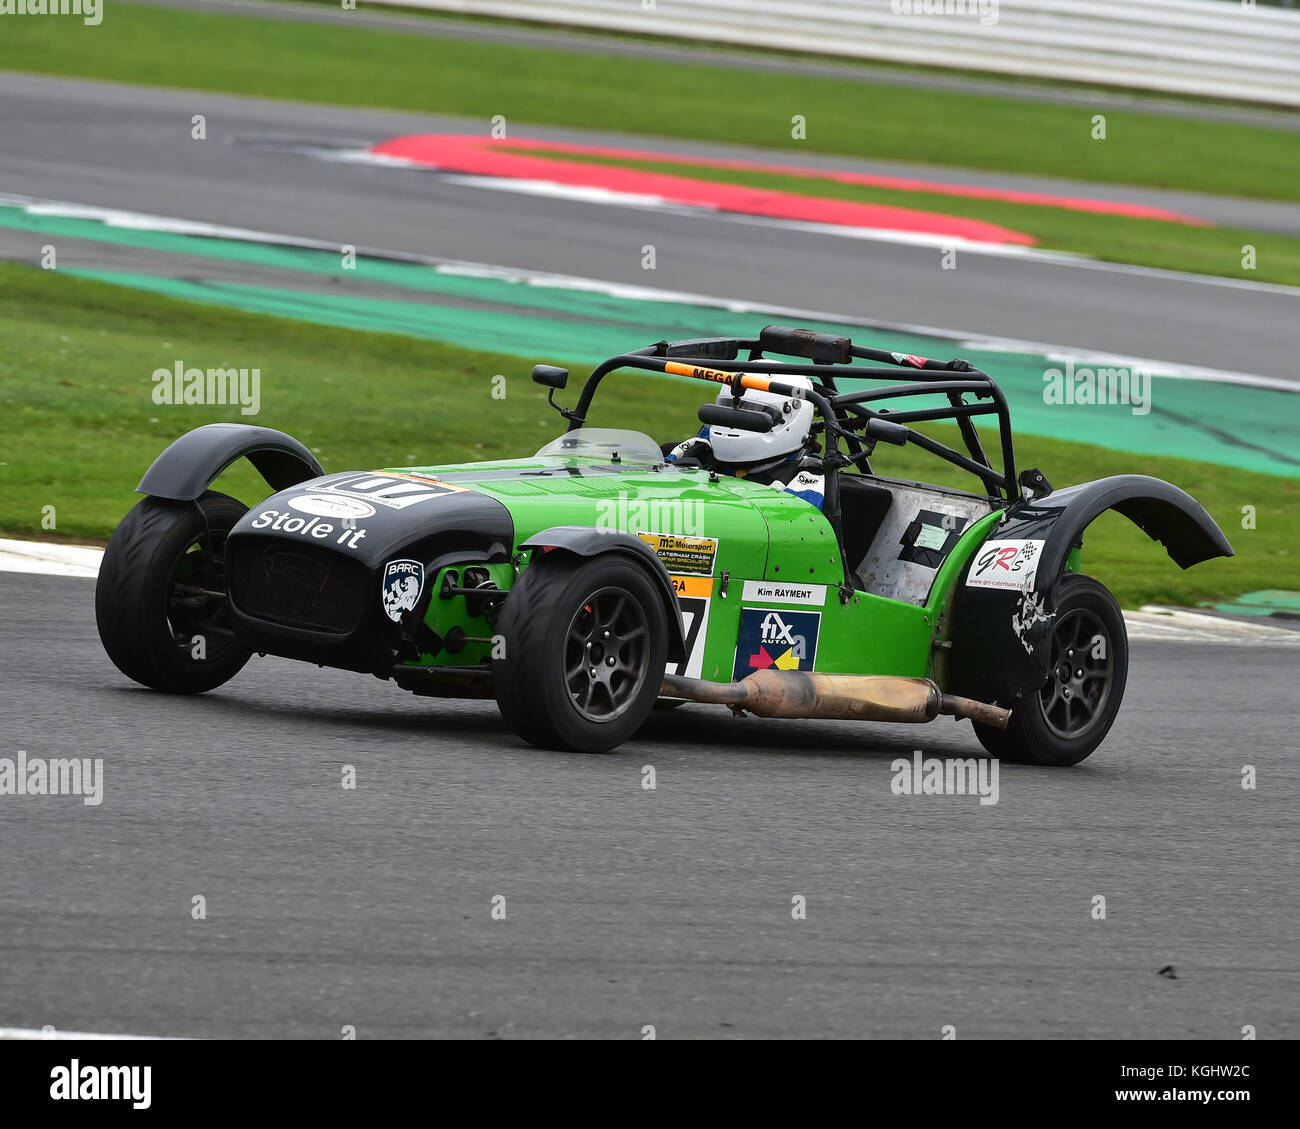 Caterham Hotels: Rayment Stock Photos & Rayment Stock Images